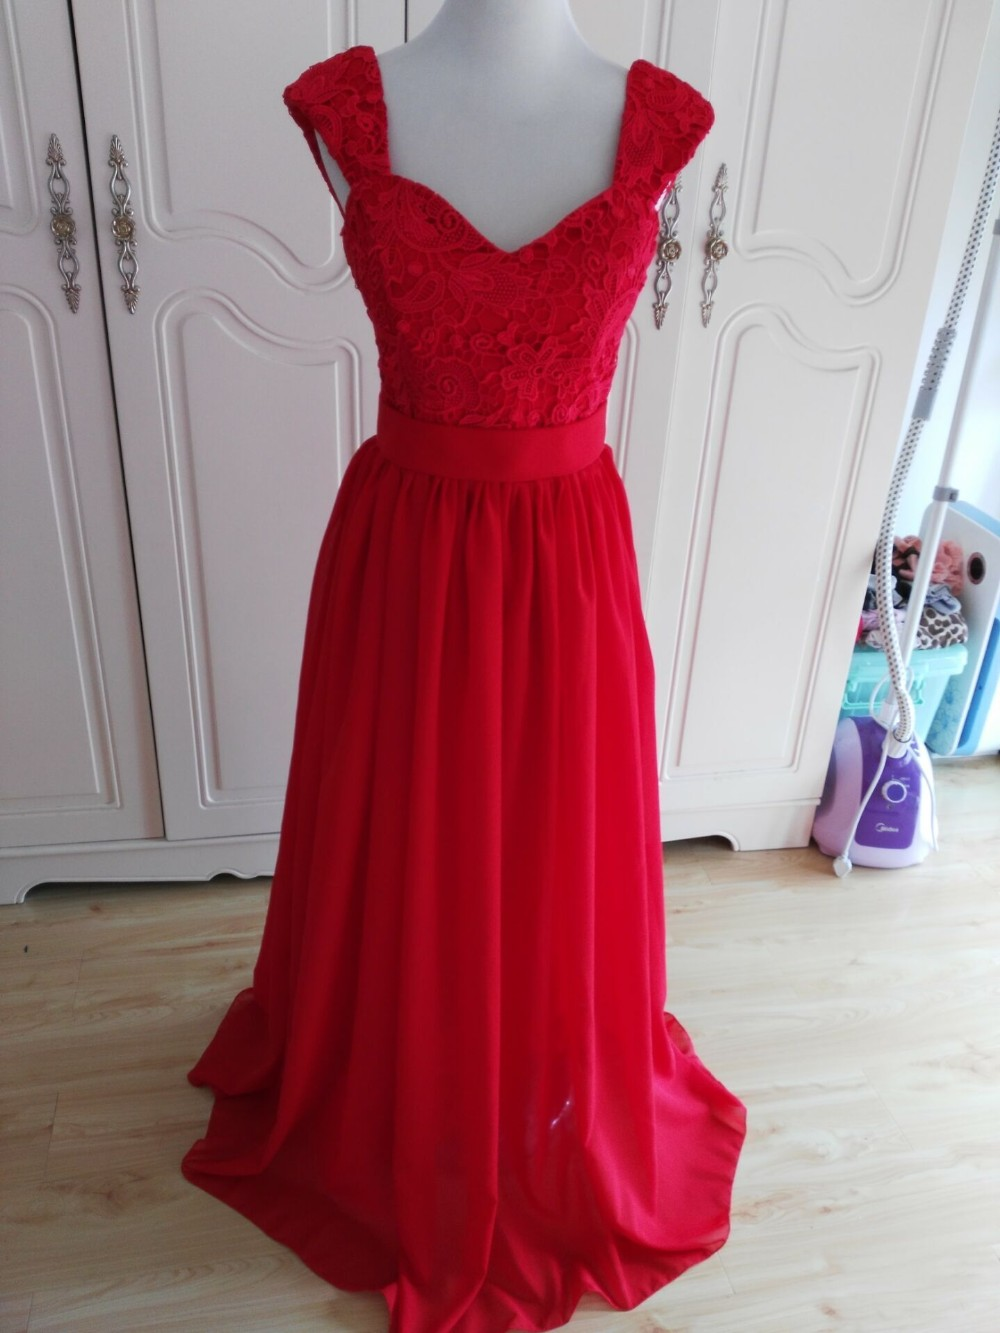 Compare prices on wine colored bridesmaids dresses online 5014 wine red colored chiffon lace with straps bridesmaid dresses new fashion 2017 party dress long ombrellifo Choice Image